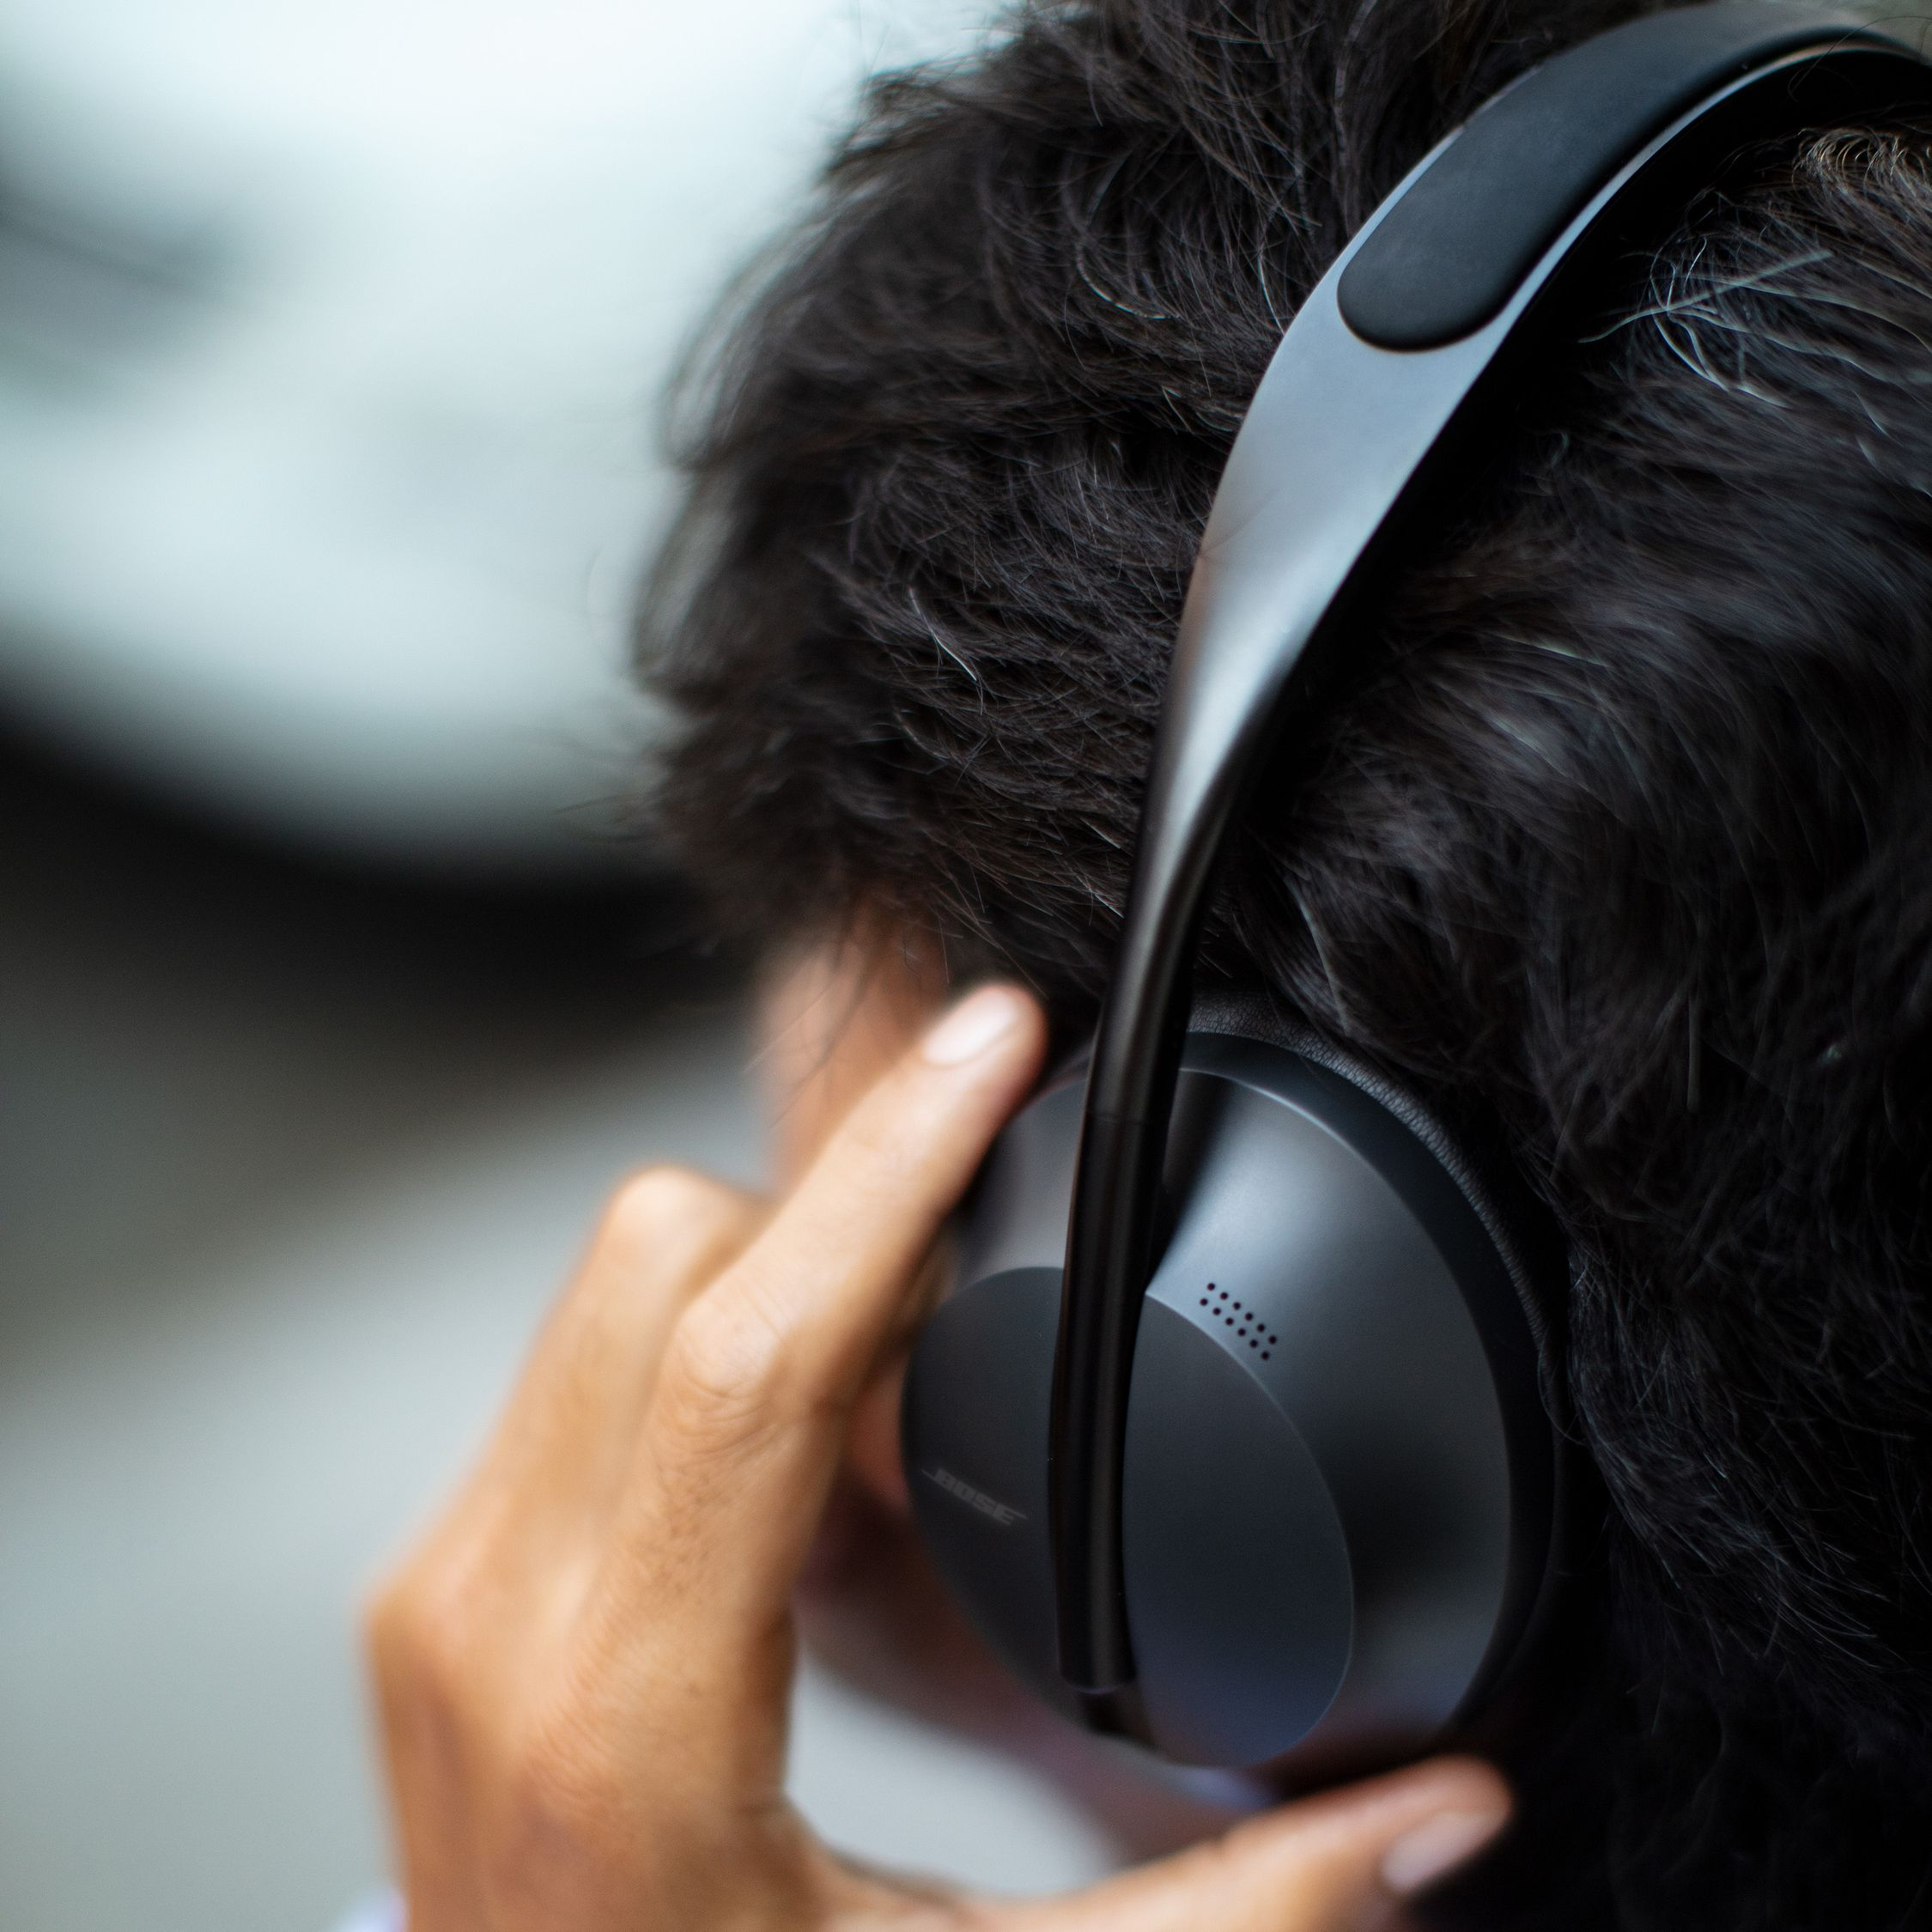 The Noise Cancelling Headphones 700's noise cancellation is micro-adjustable